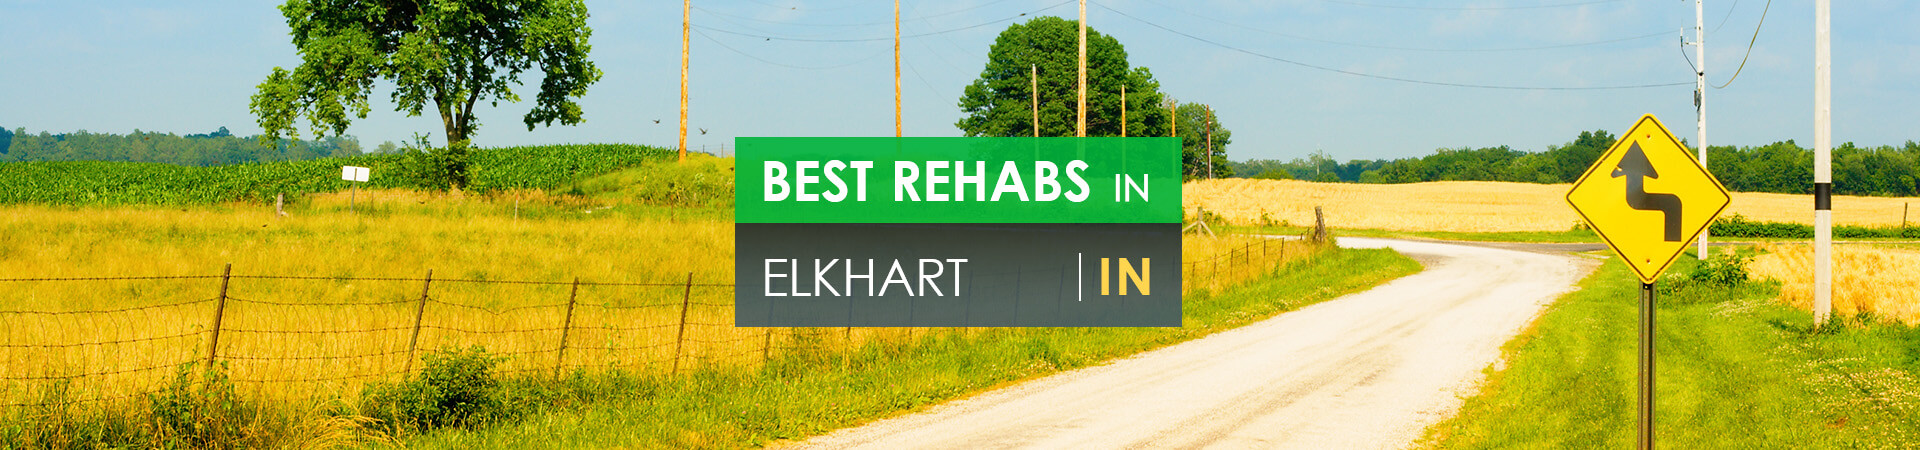 Best rehabs in Elkhart, IN